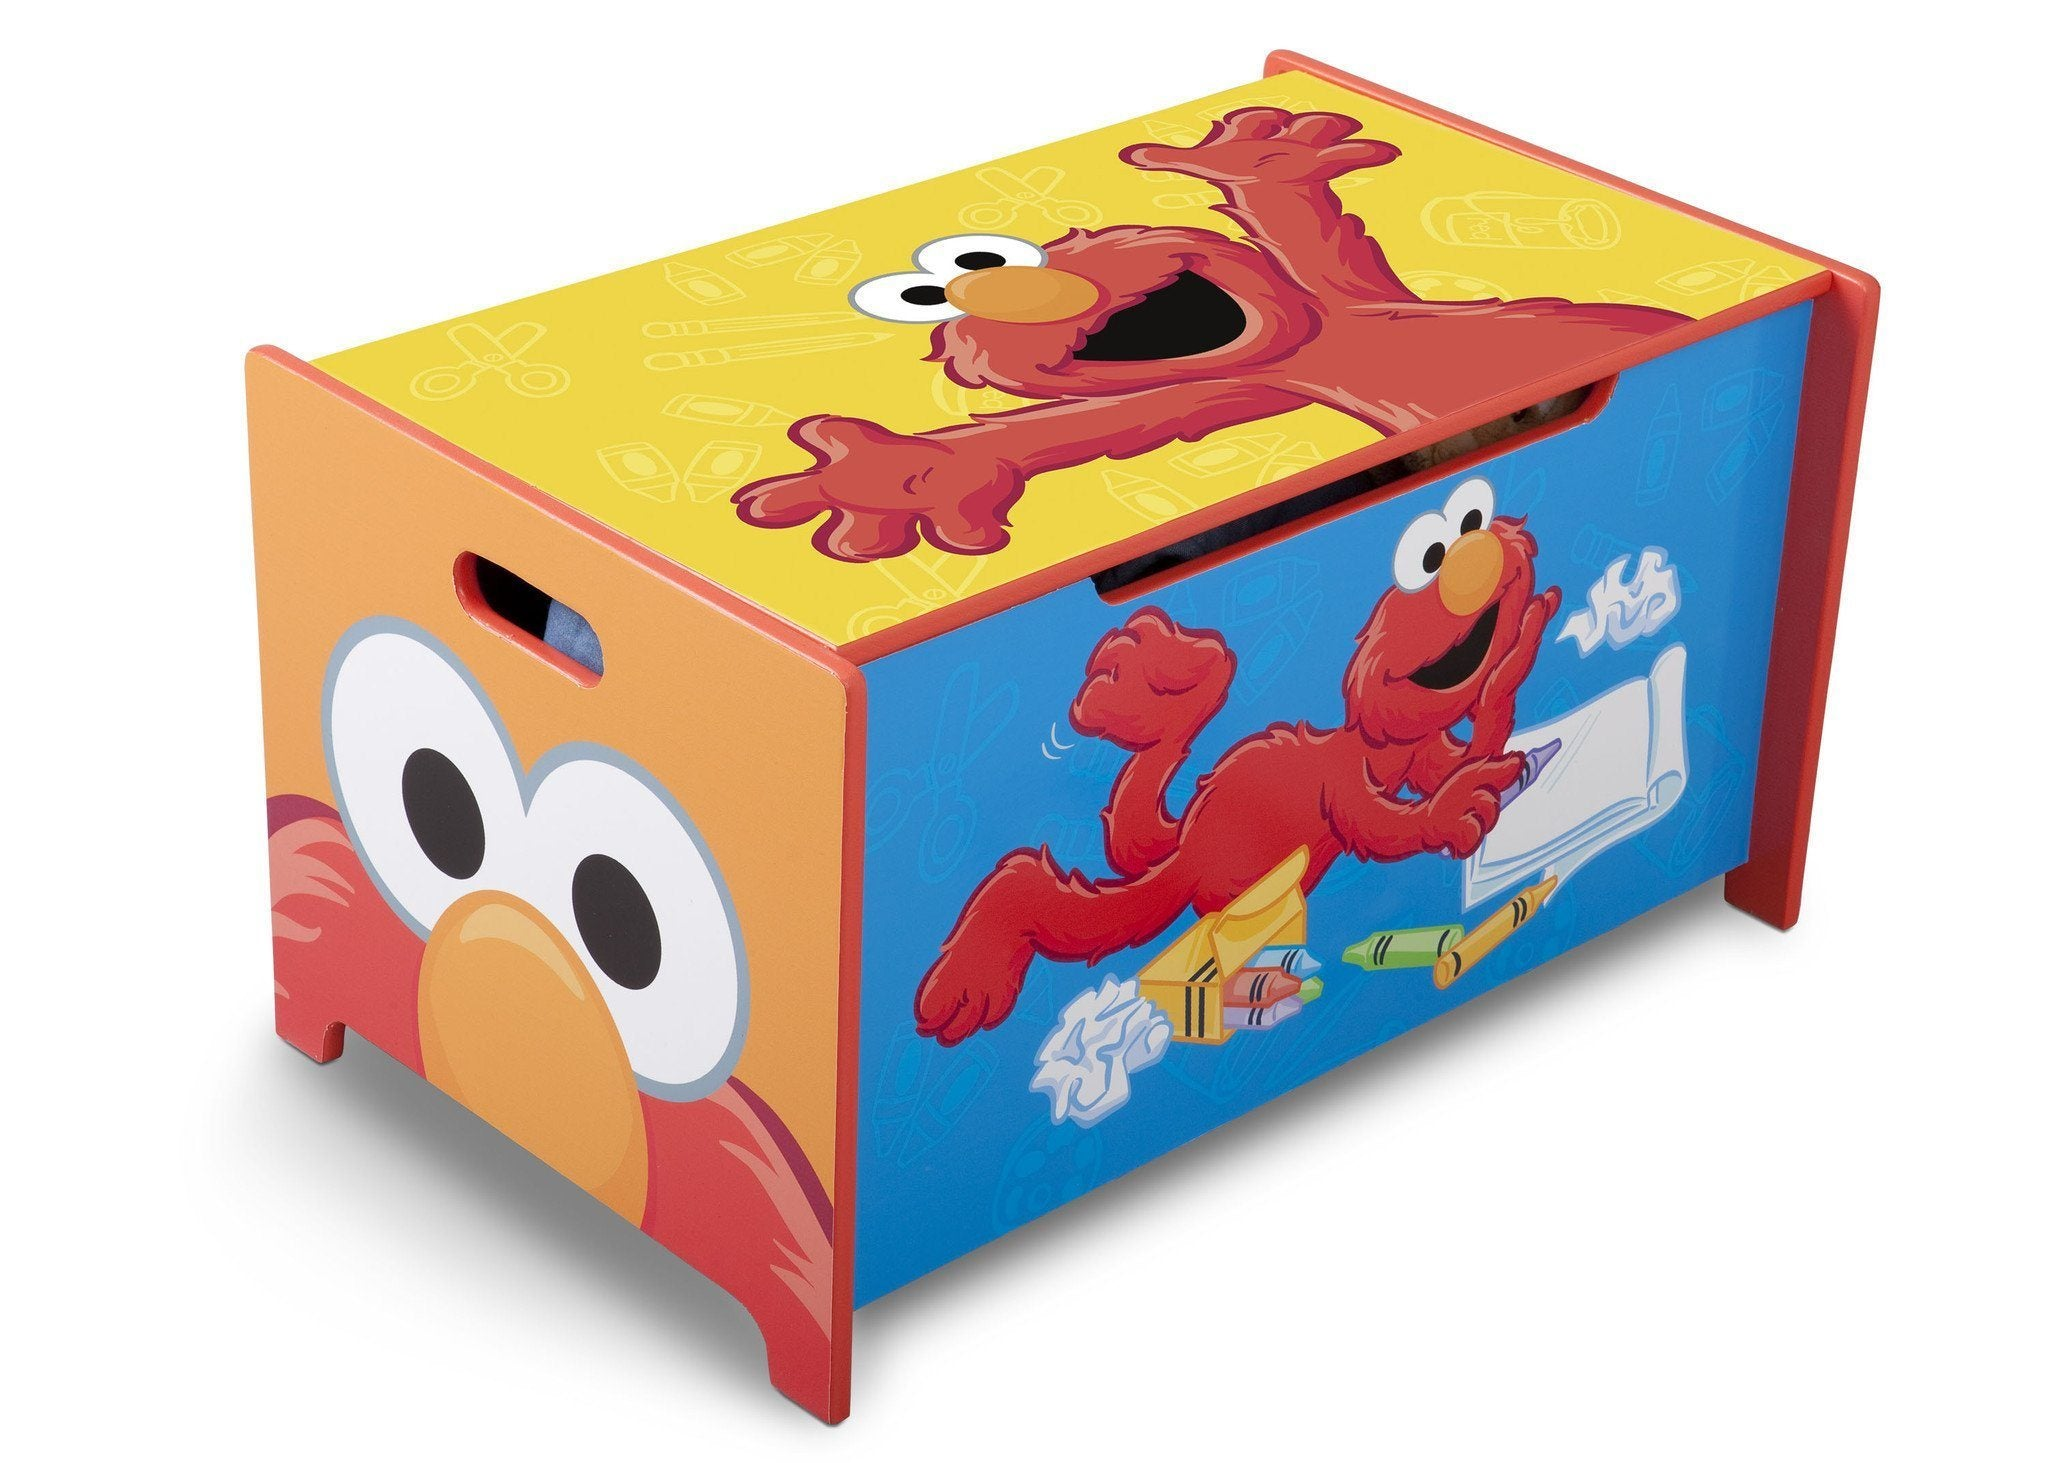 Delta Children Sesame Street Toy Box, Left View a1a